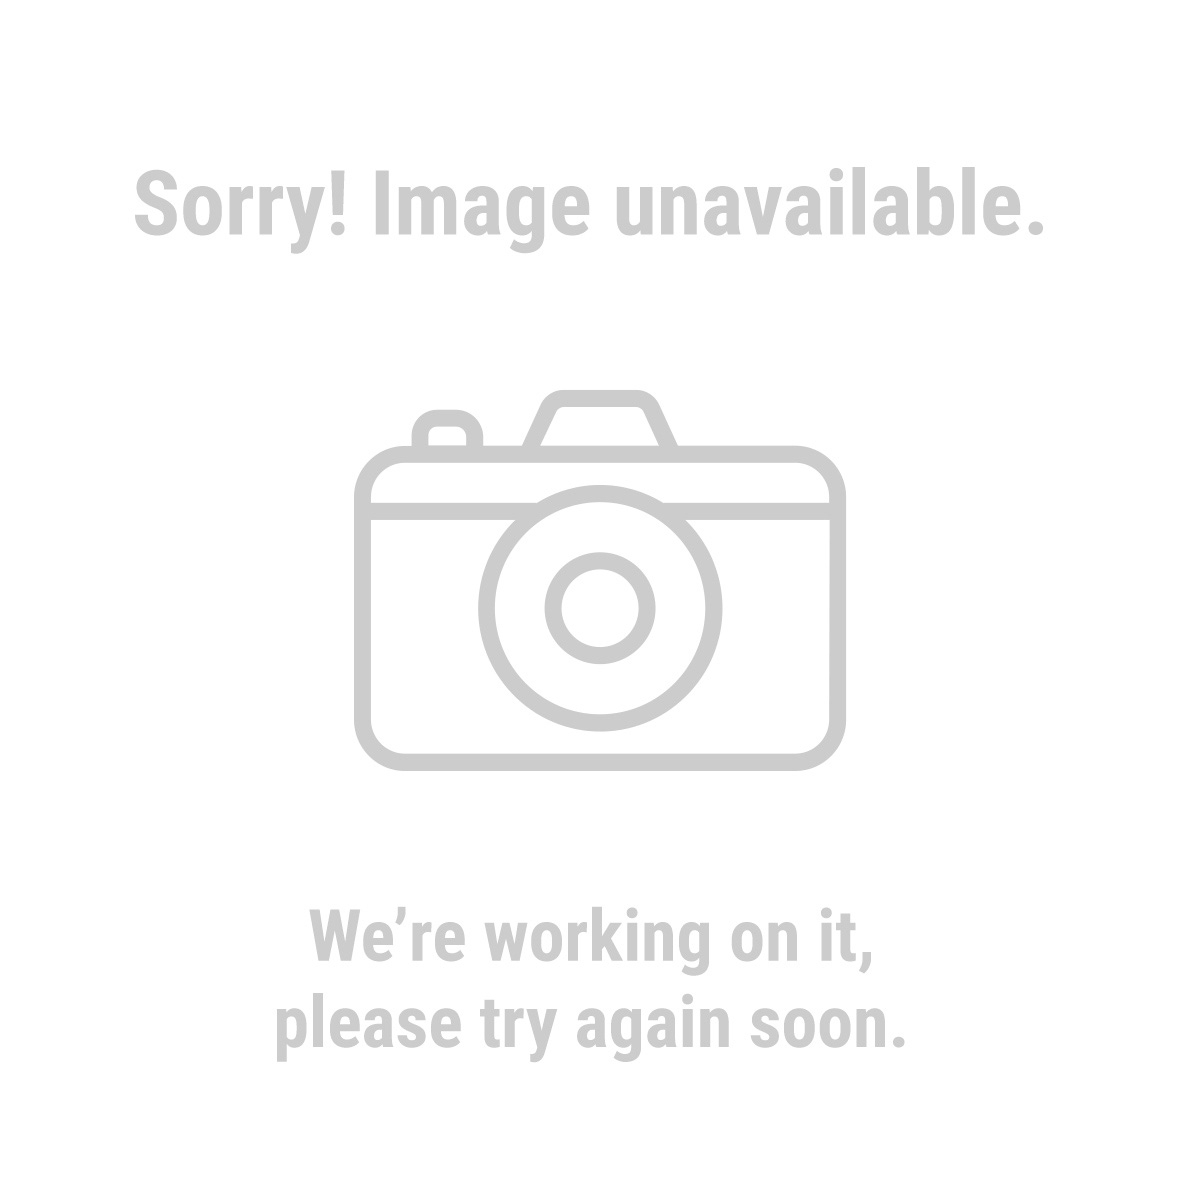 Warrior® 61621 Titanium Nitride High Speed Steel Drill Bits,  Piece